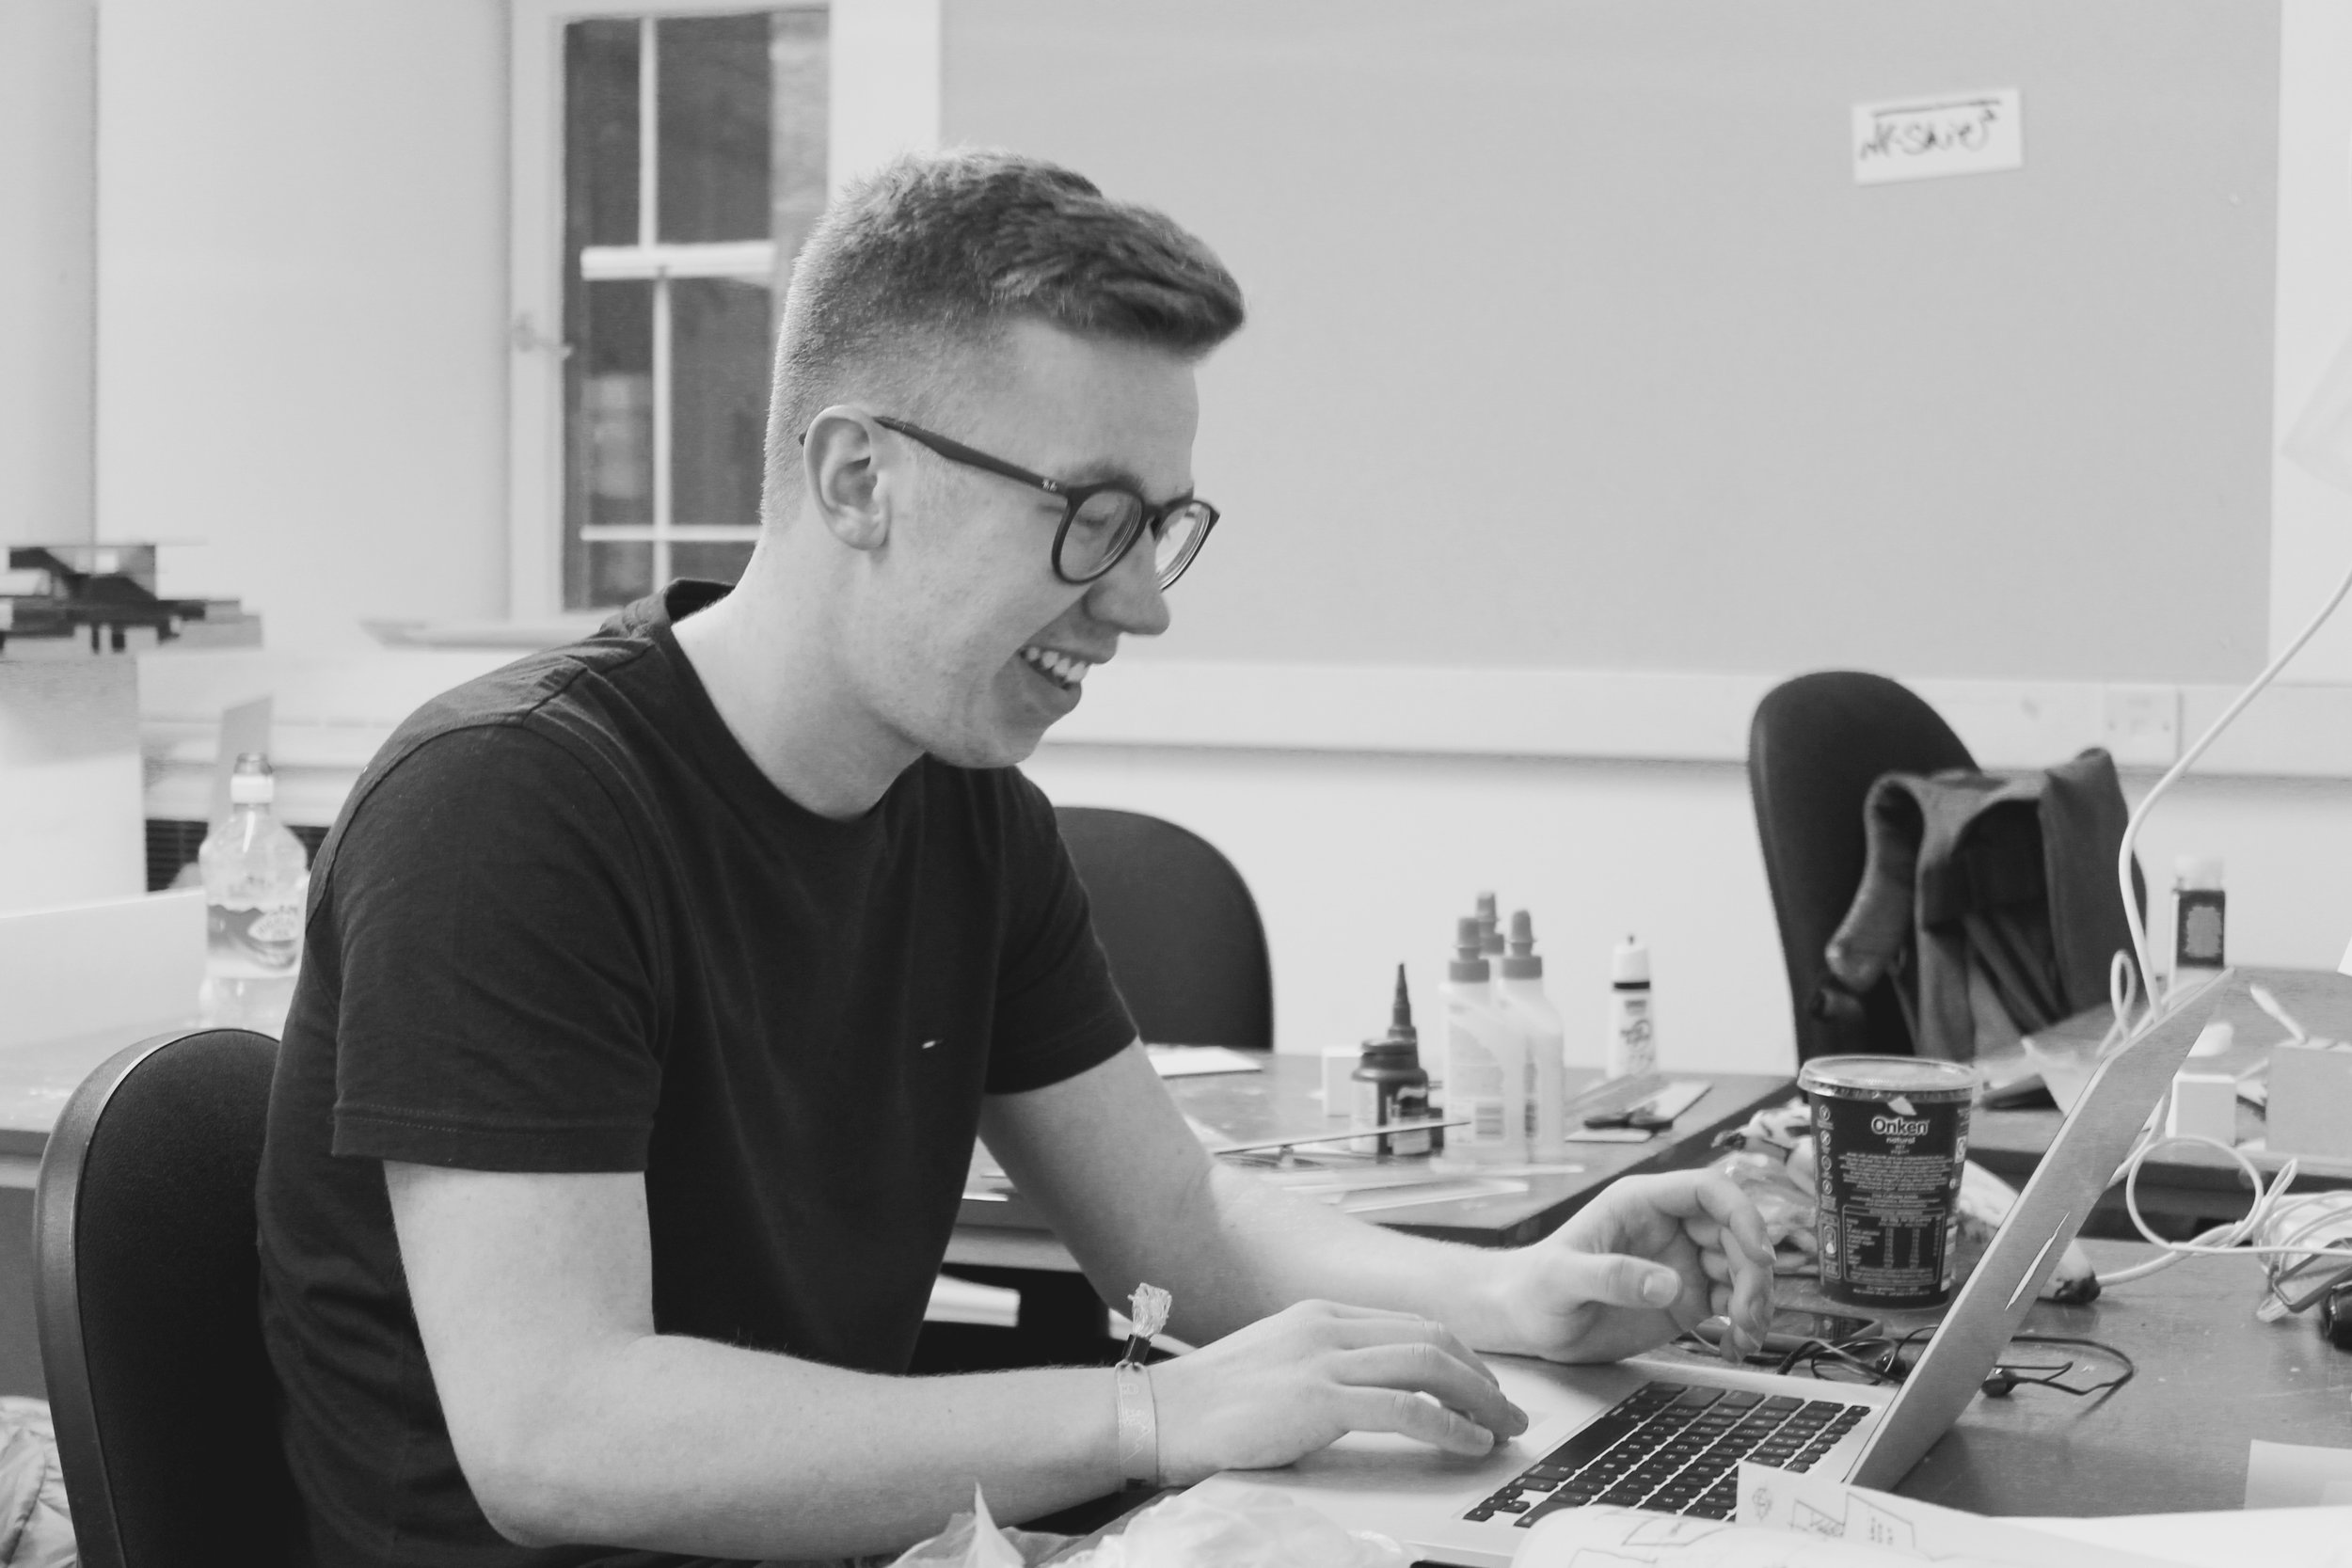 Grant Macgregor // Part 1 Architectural Assistant      Grant is currently studying at the university of edinburgh in order to gain his MA Architecture Degree and RIBA Part 1.